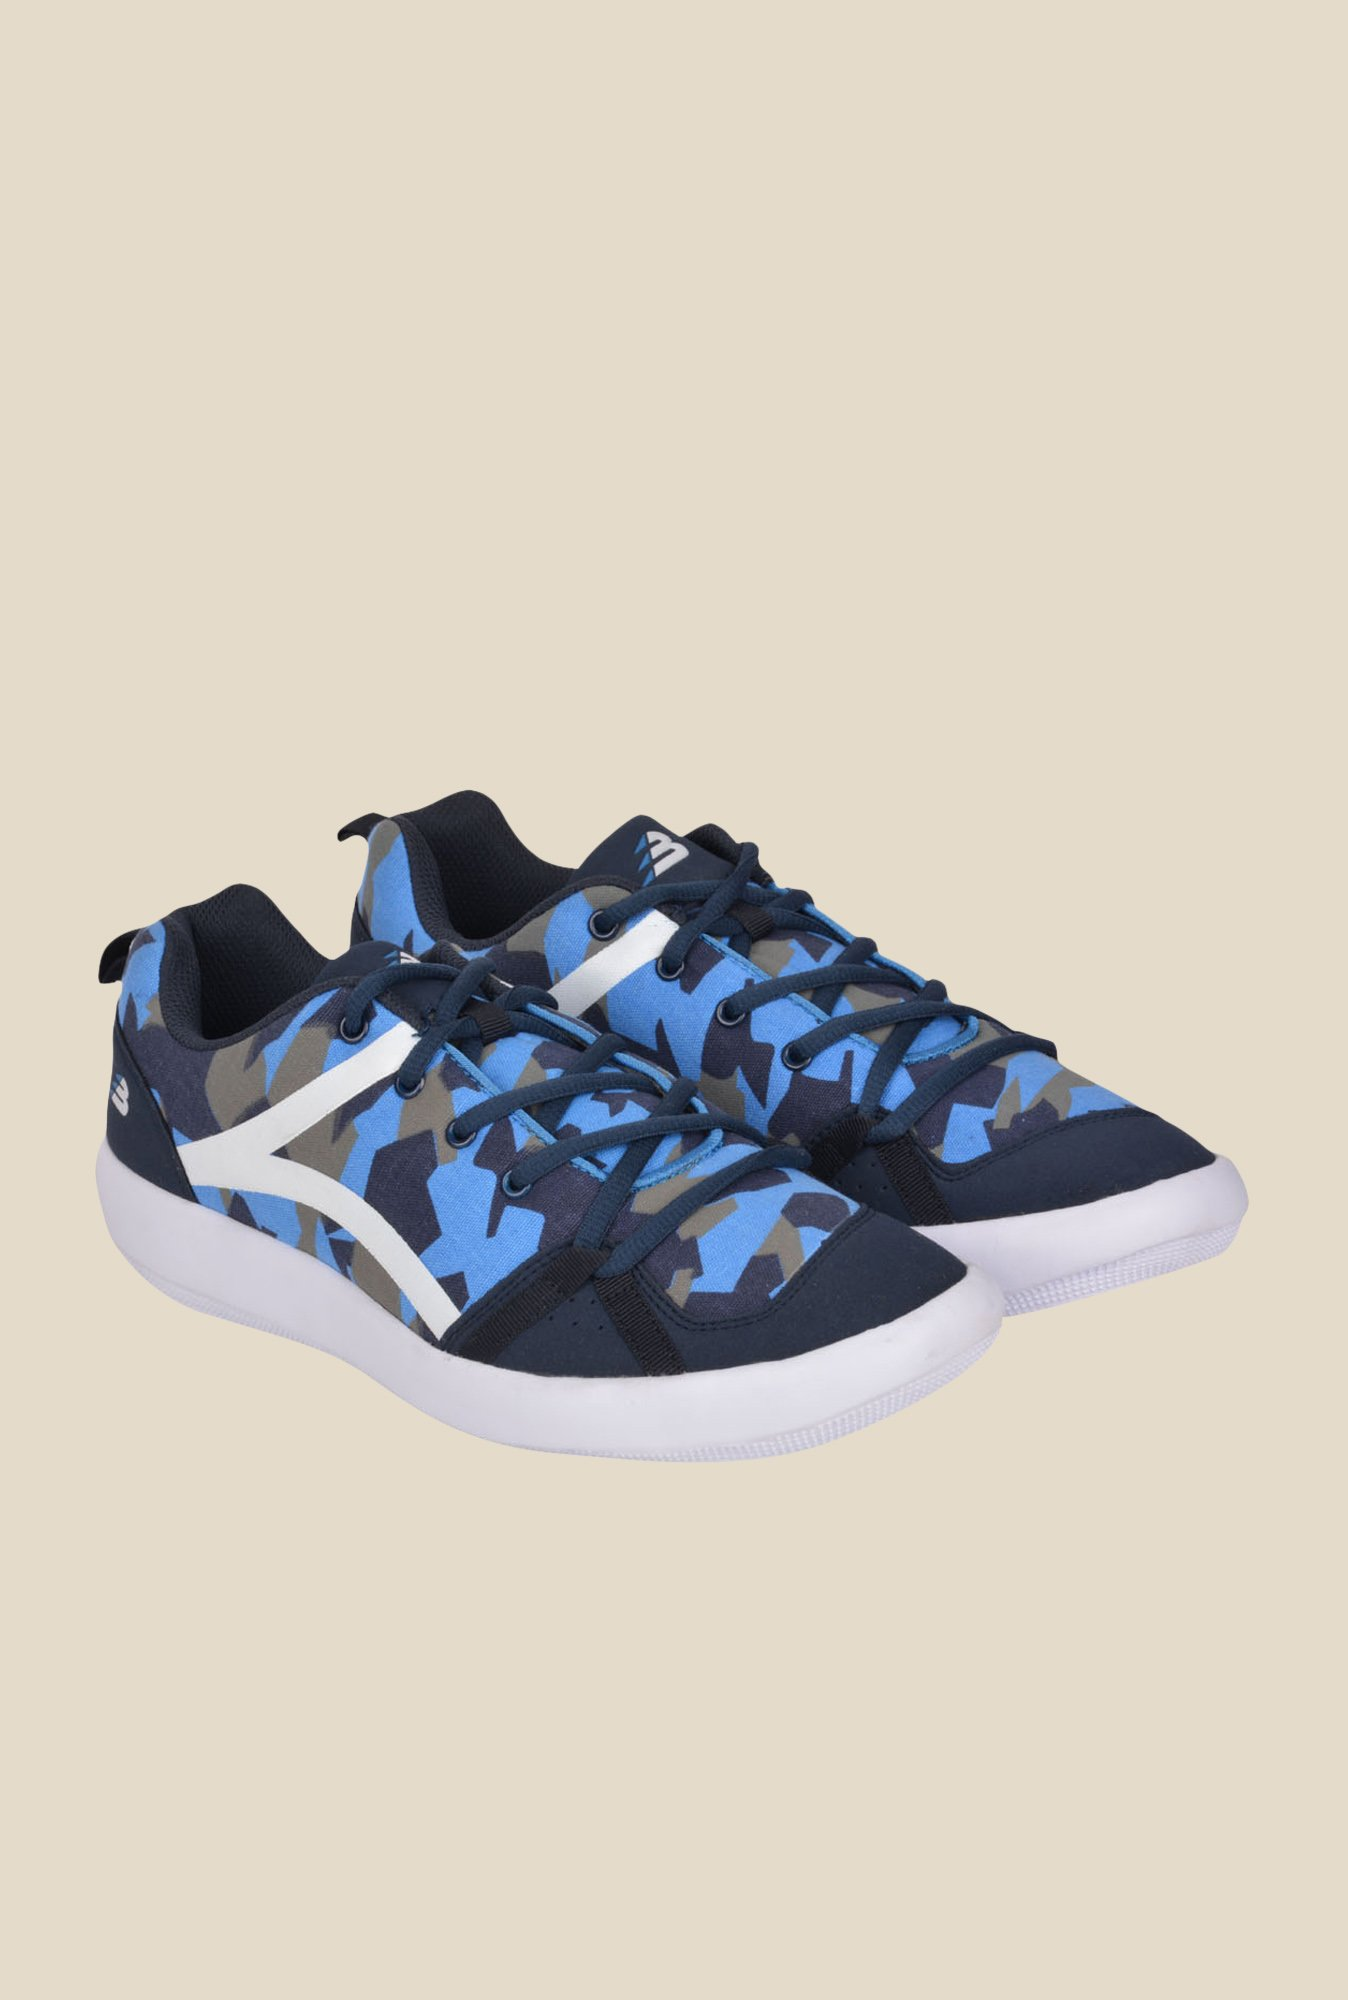 Lotus Bawa Navy Blue & White Running Shoes